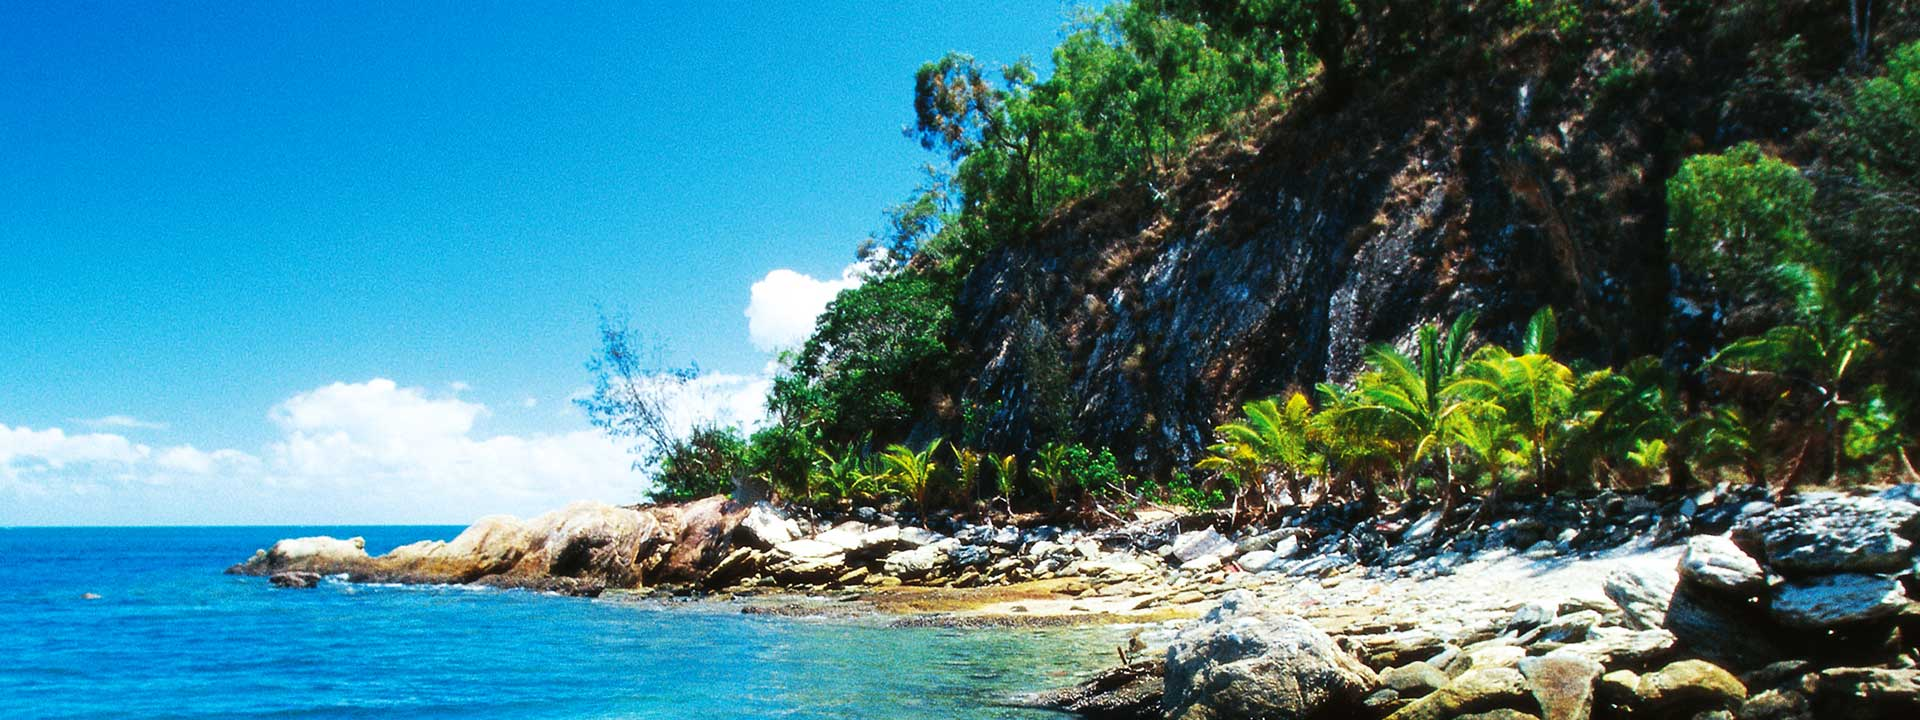 Explore the beautiful waters of Palm Cove